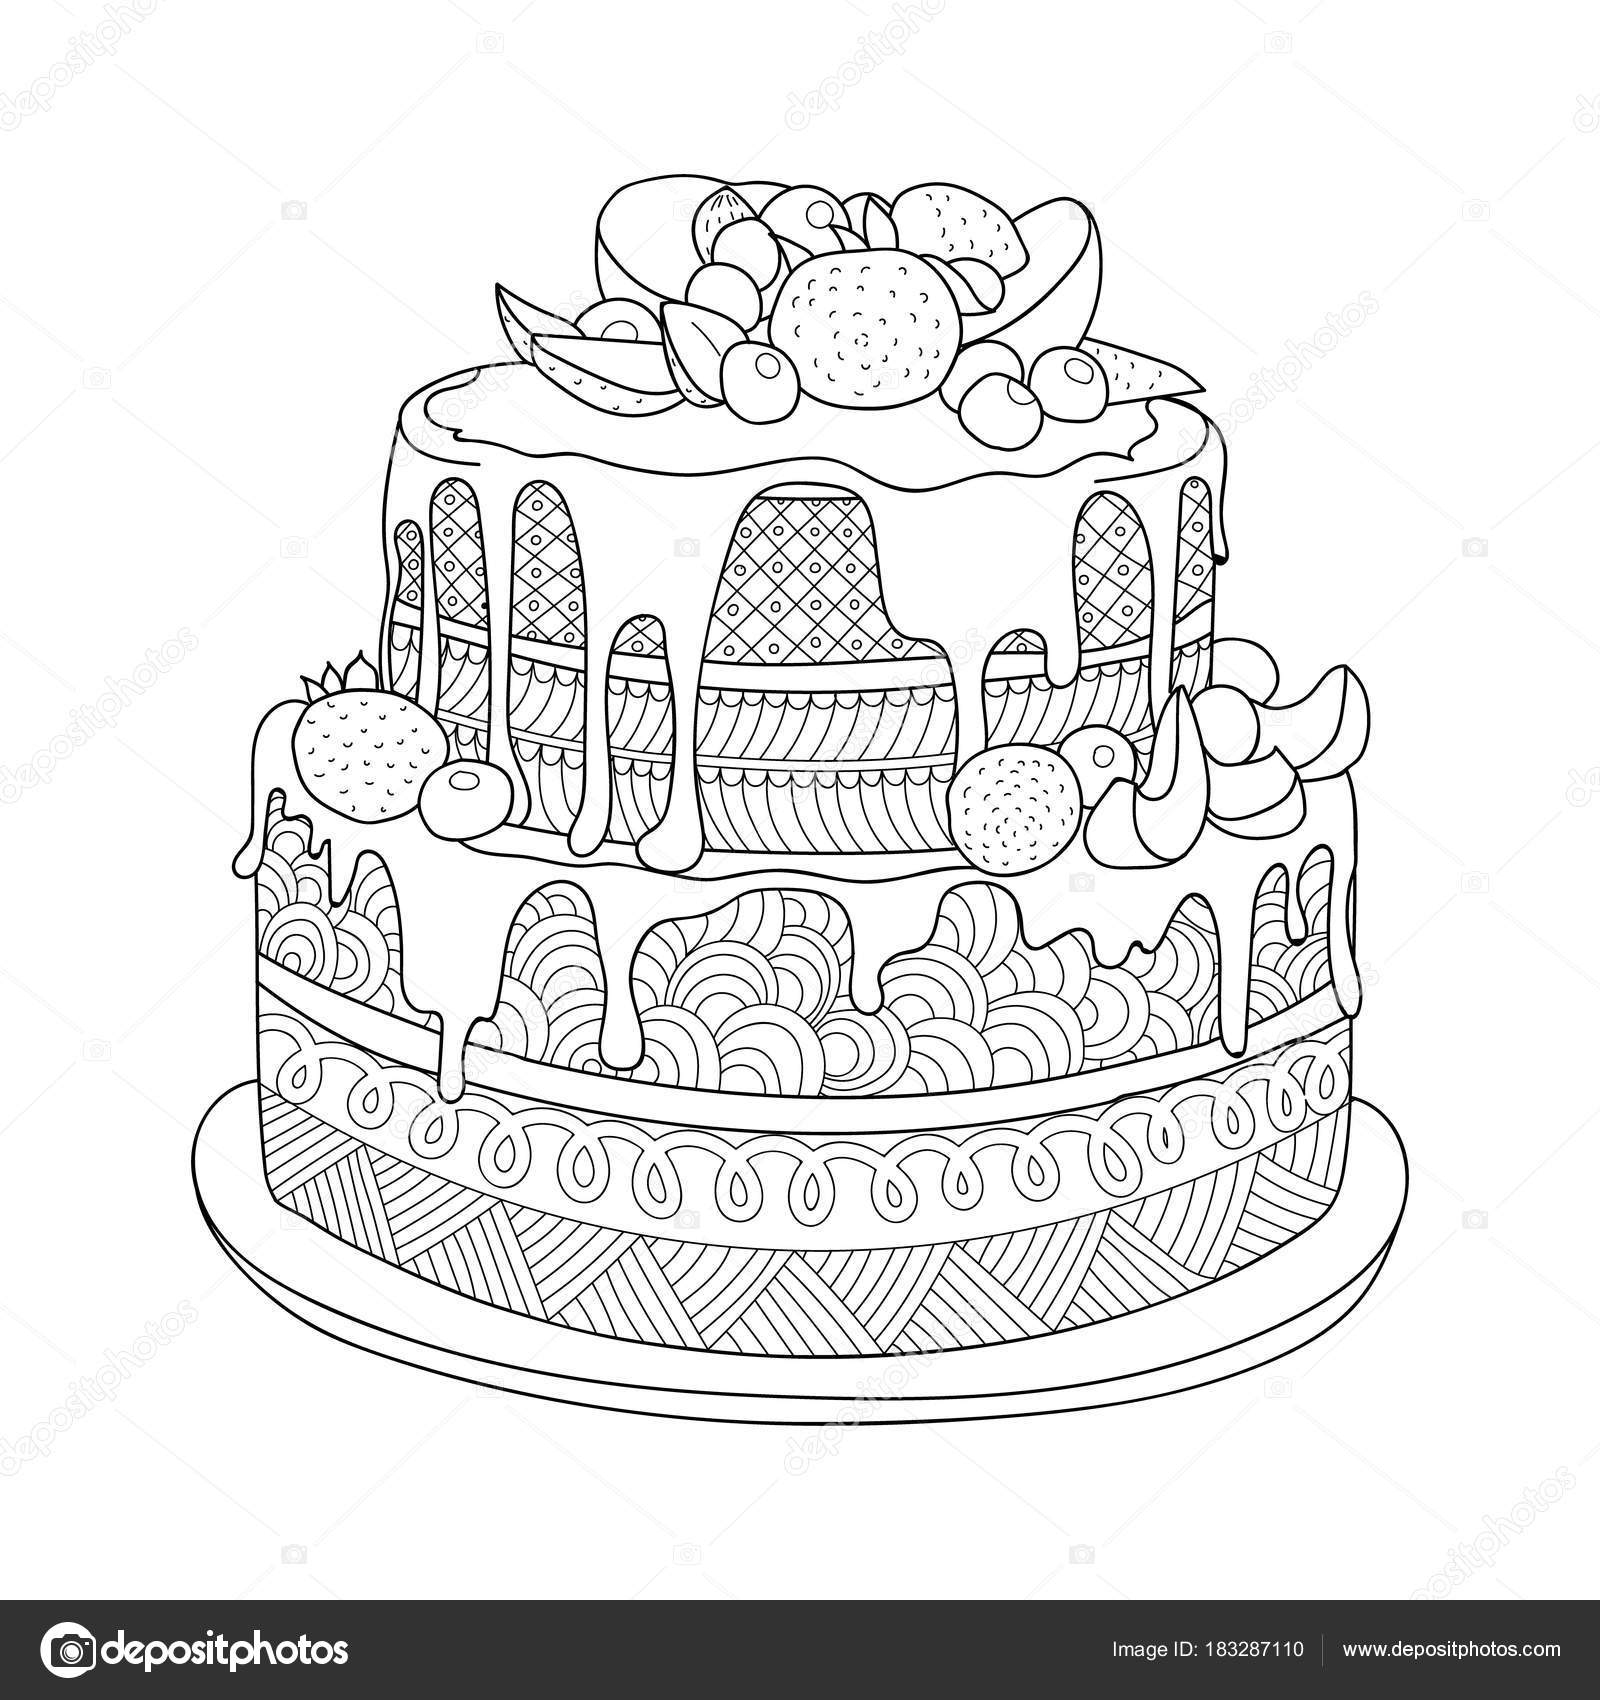 Hand Drawn Doodle Cake Berries Coloring Book Adults Zentangle Style